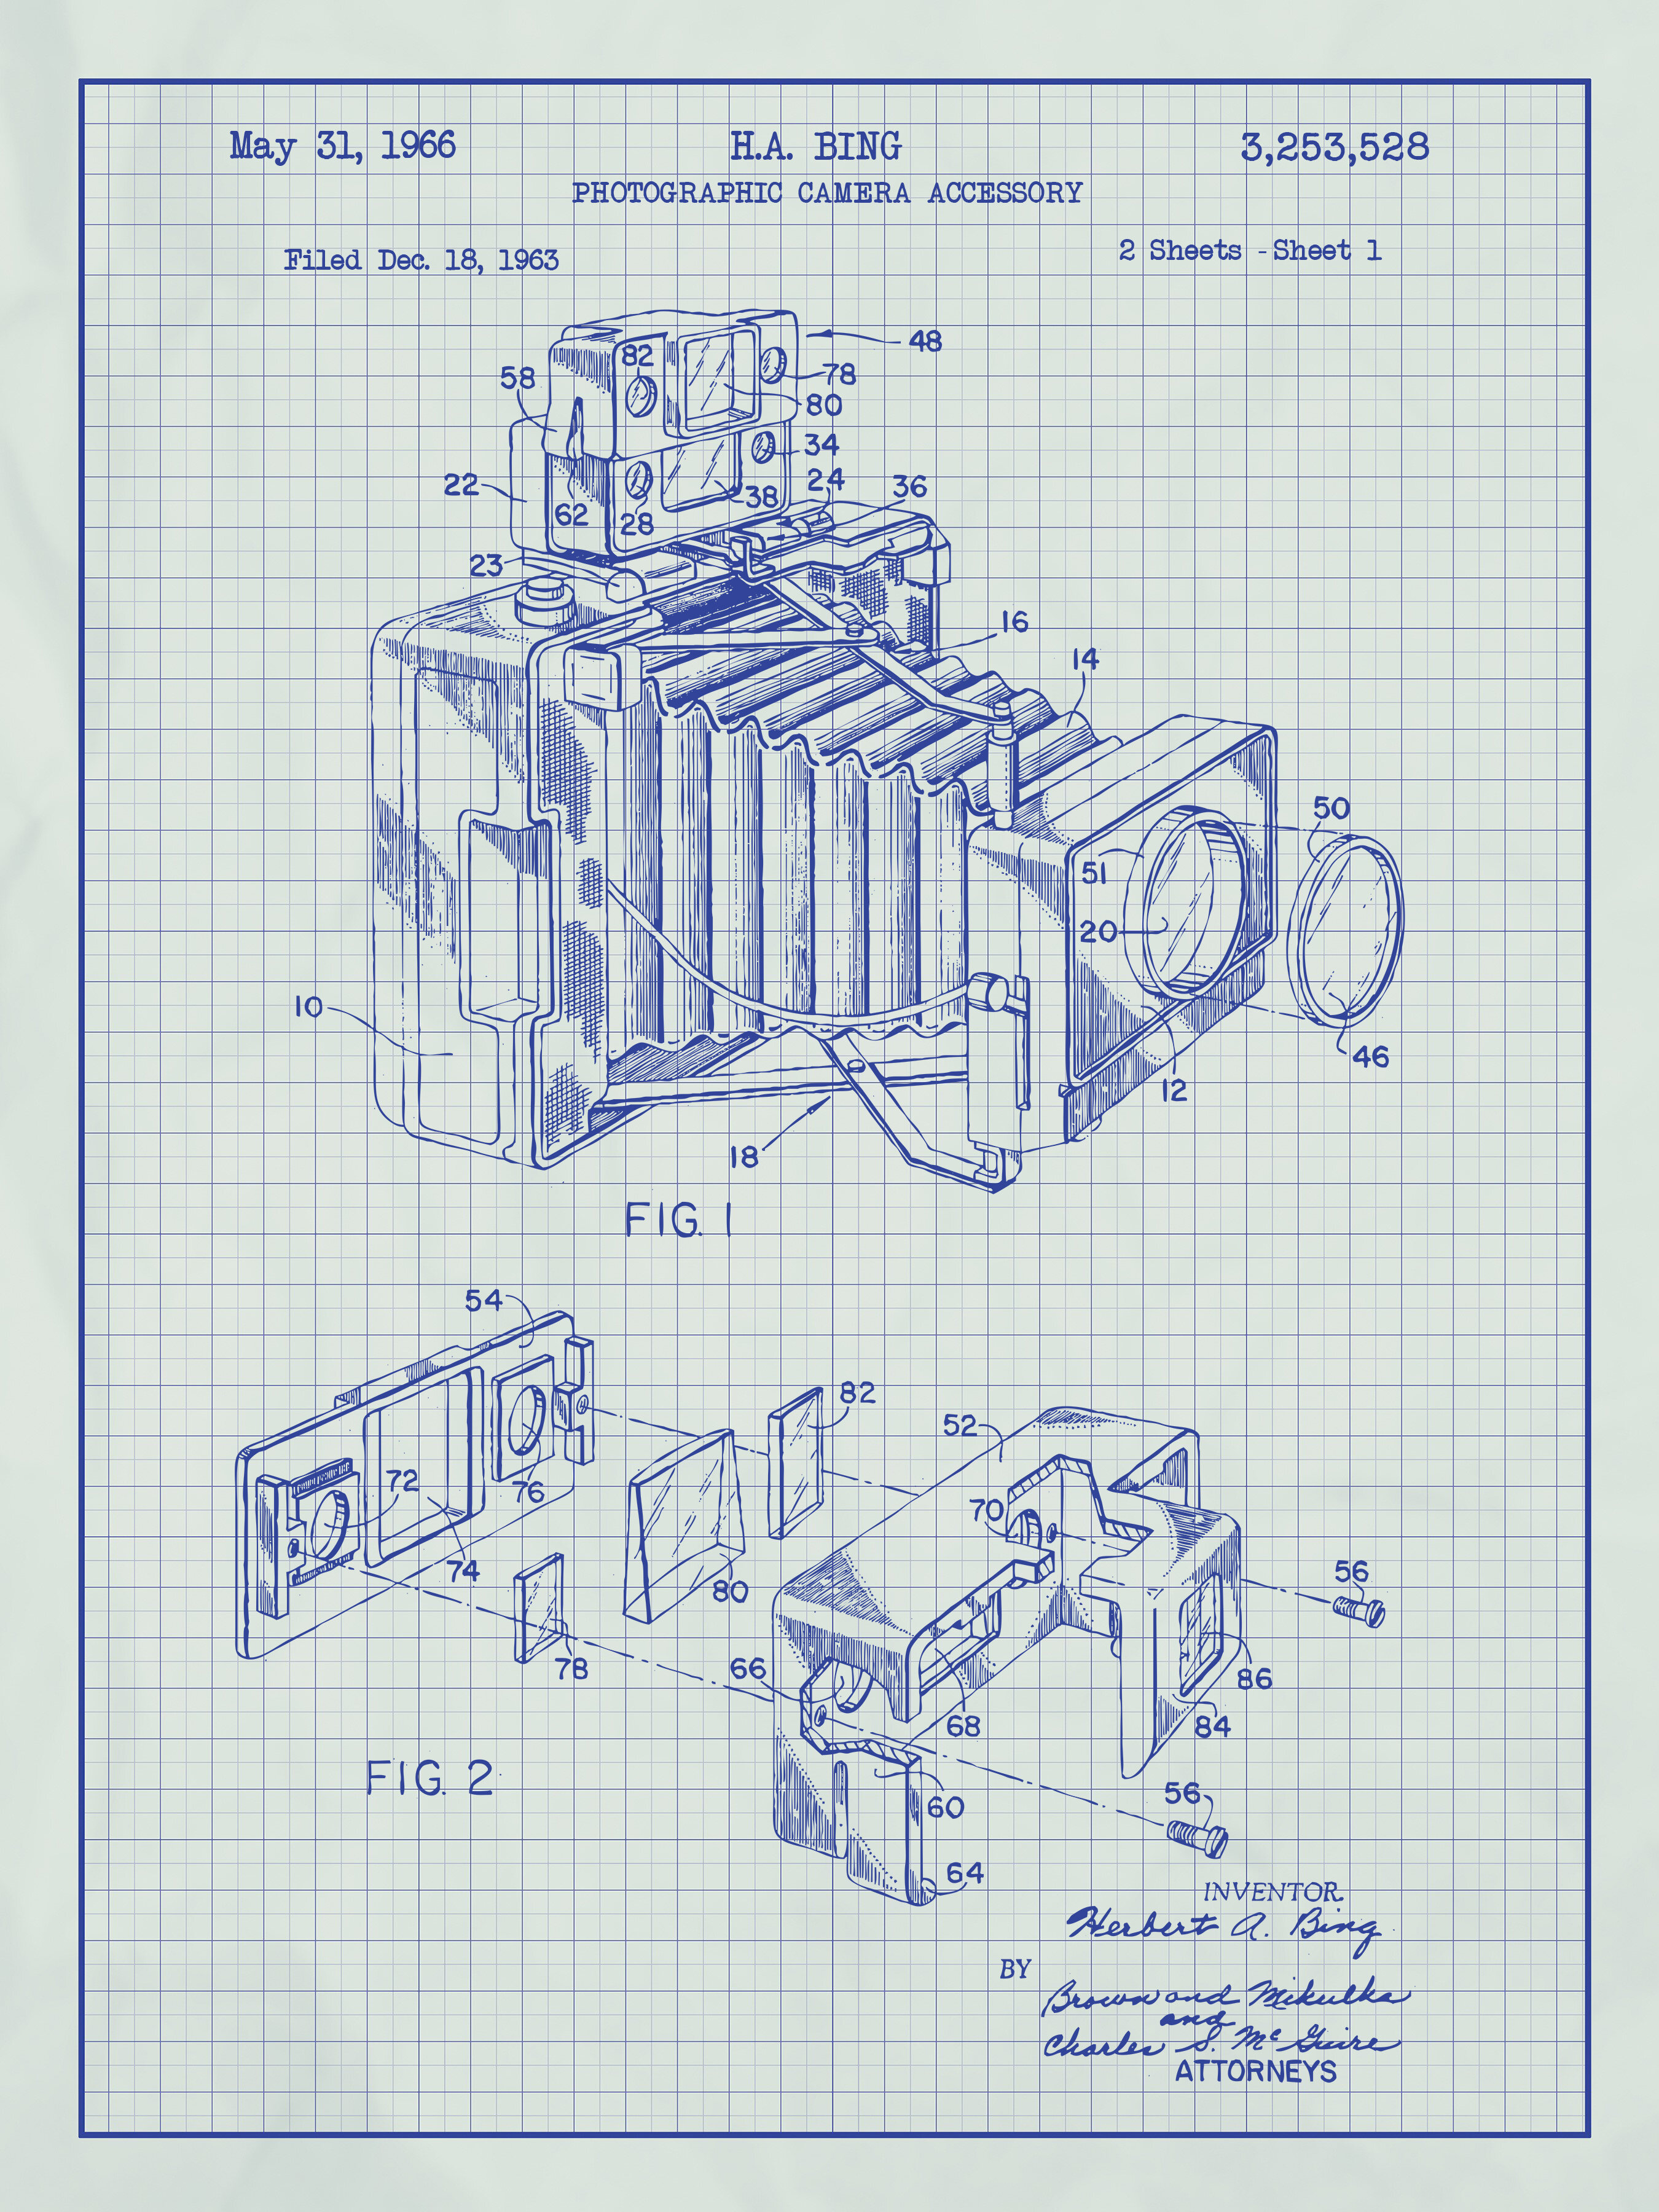 Inked and screened photographic camera blueprint graphic art inked and screened photographic camera blueprint graphic art reviews wayfair malvernweather Choice Image